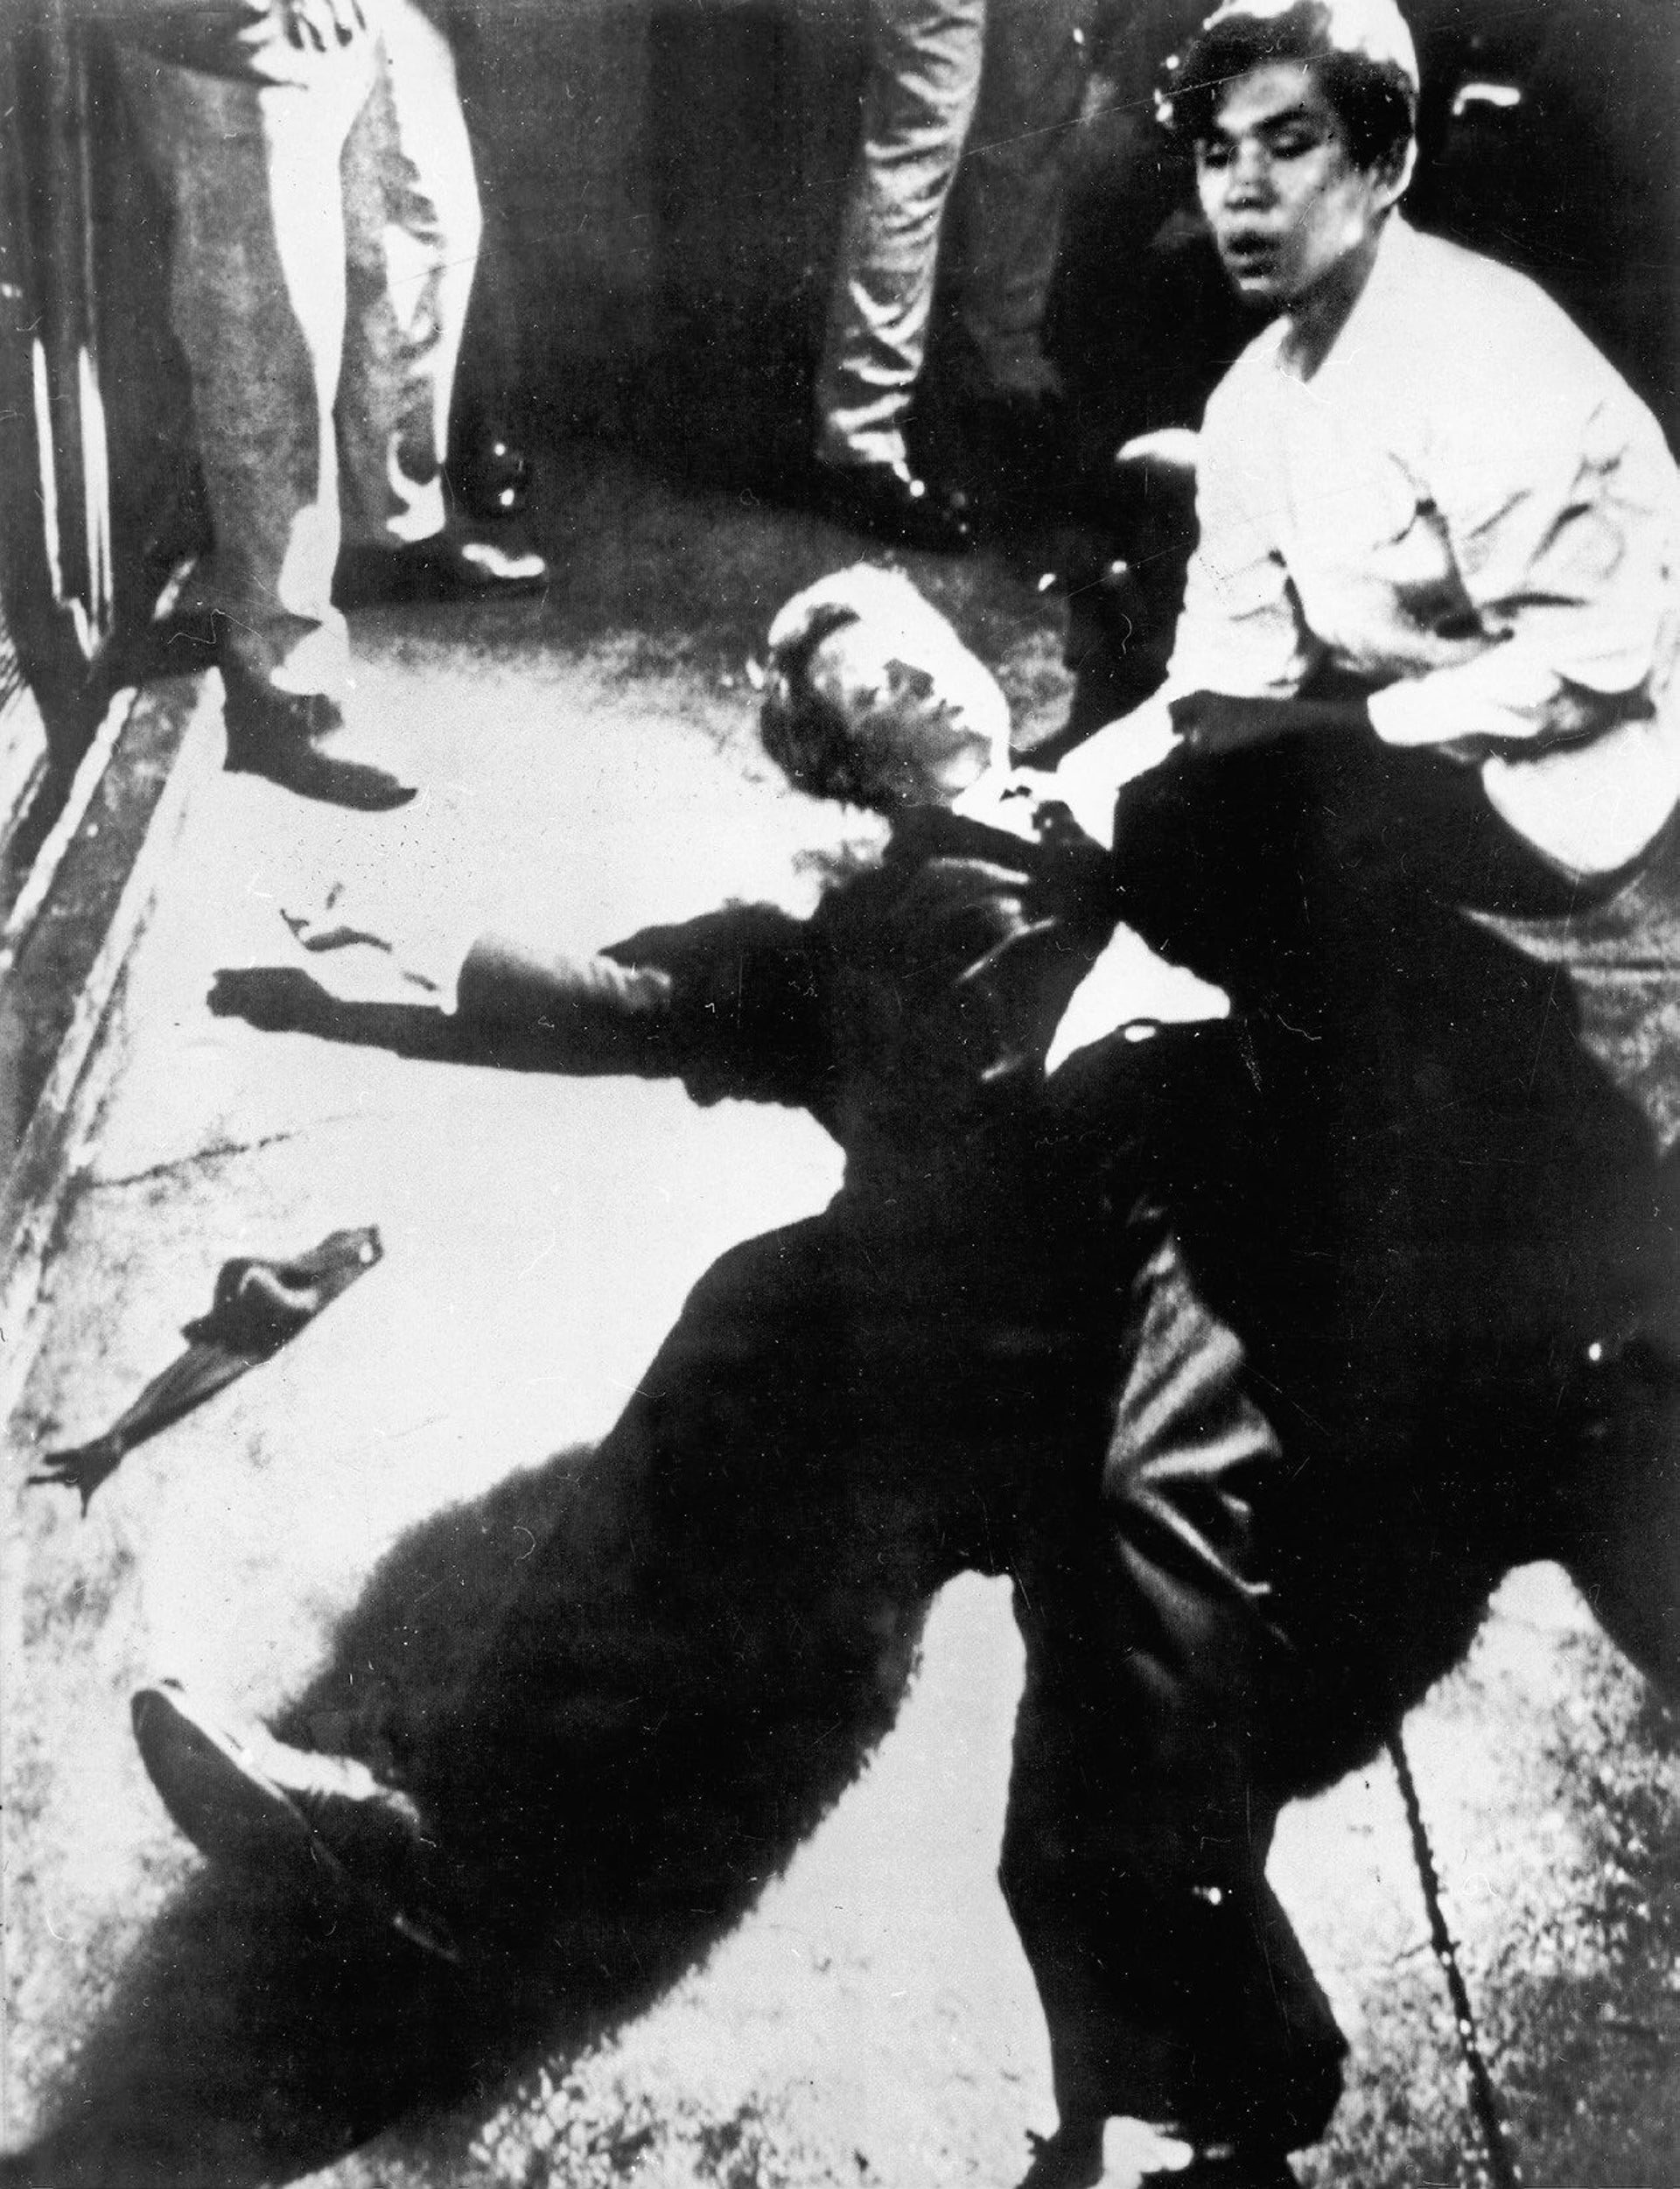 Just after Bobby is shot at the Ambassador Hotel in Los Angeles, busboy Juan Romero places rosary beads in his hand and tries to cushion his head as Ethel pleads with the pressing crowd to 'give him room to breathe.'